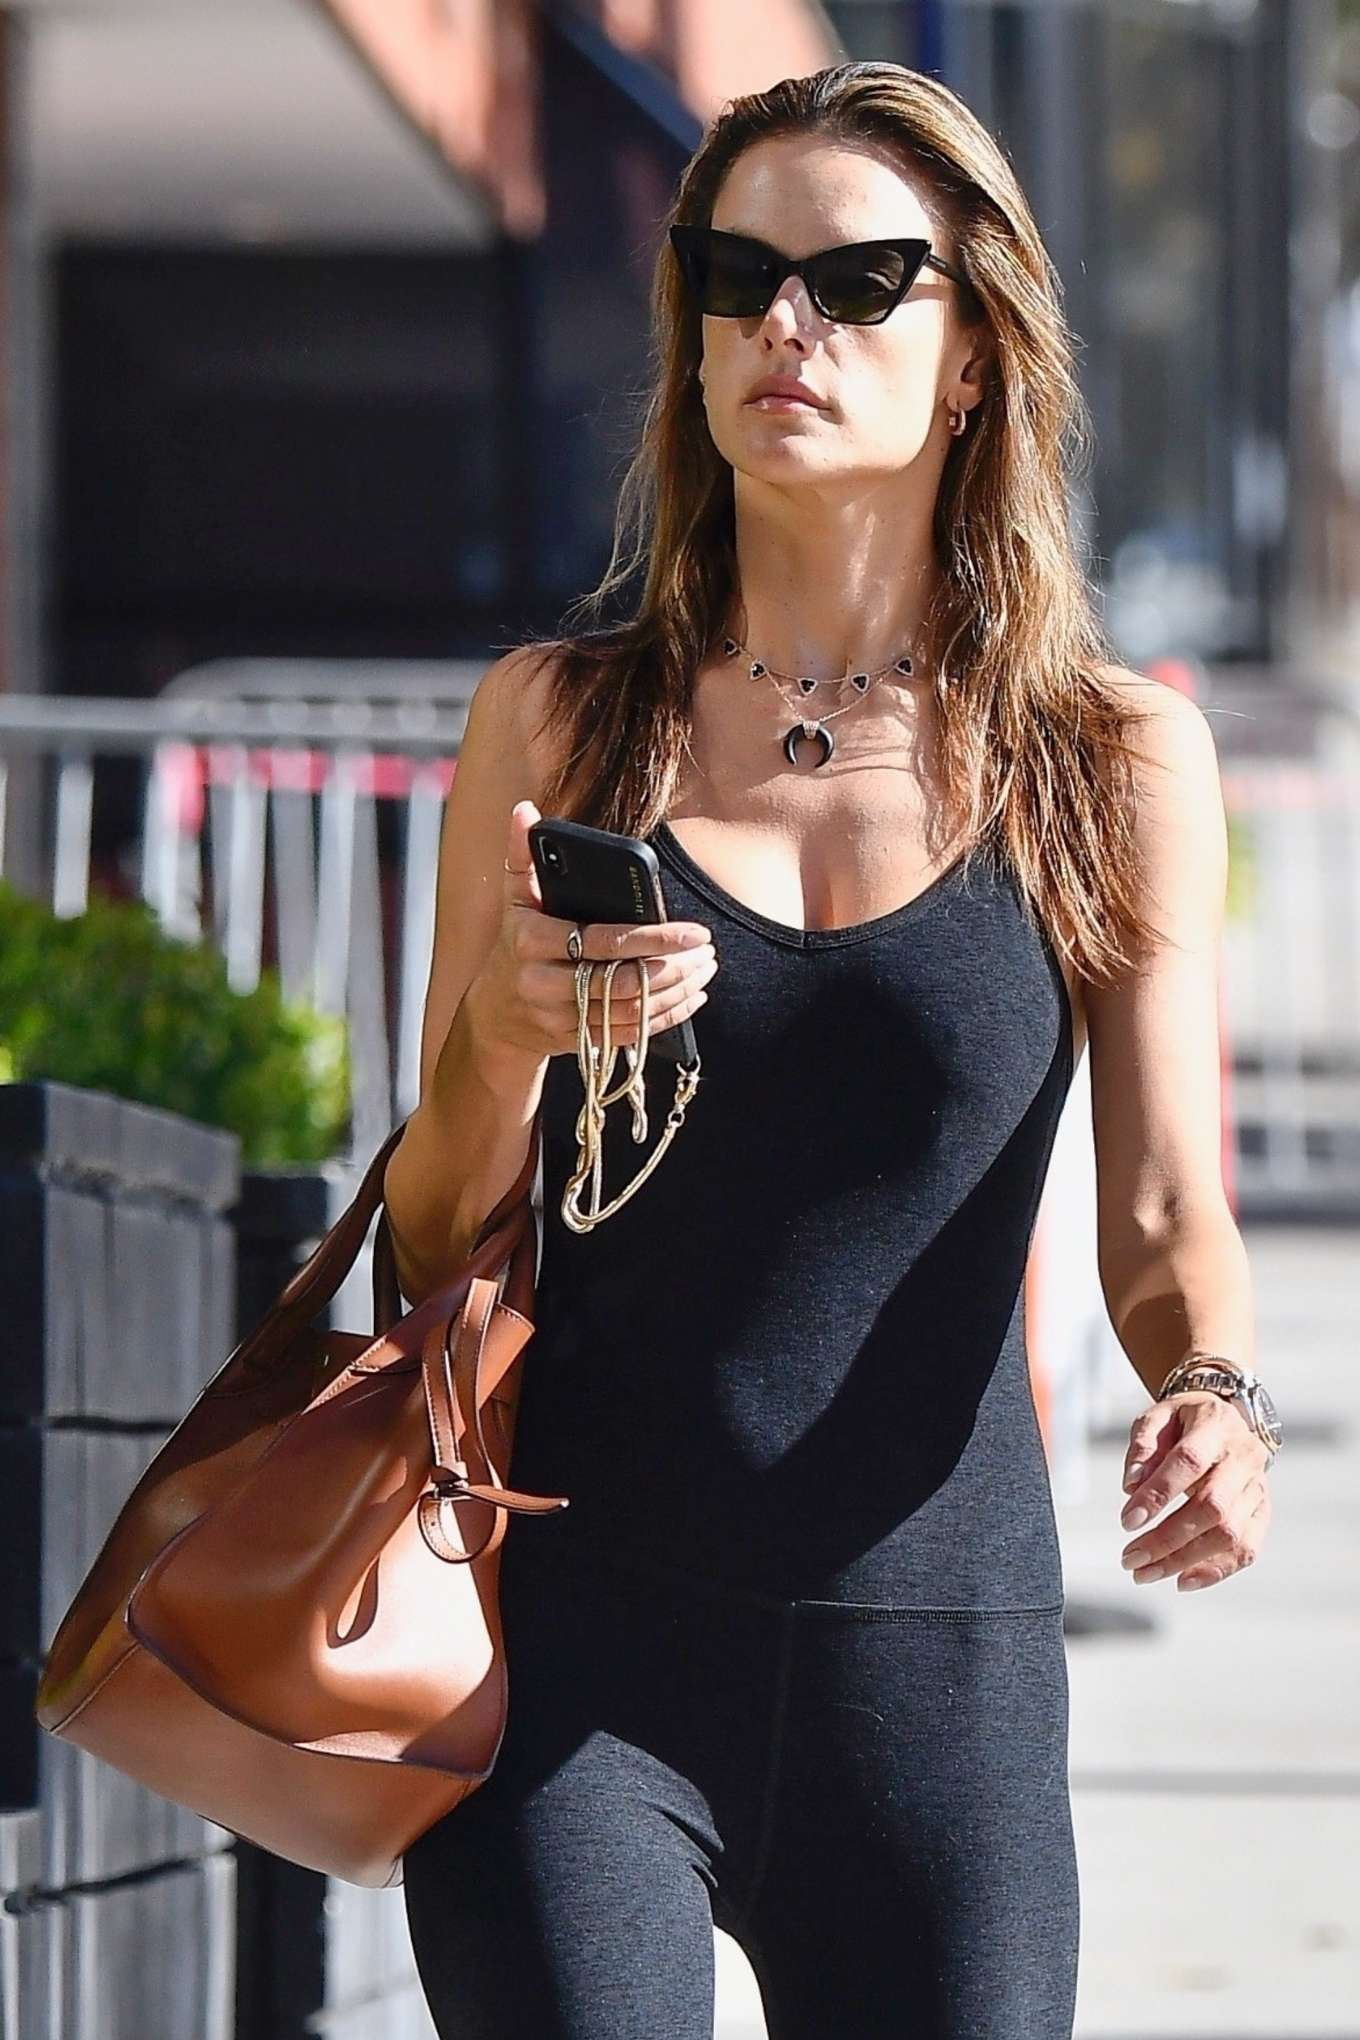 Alessandra Ambrosio in Black Tights Jumpsuit - Heads for a pilates class in Los Angeles